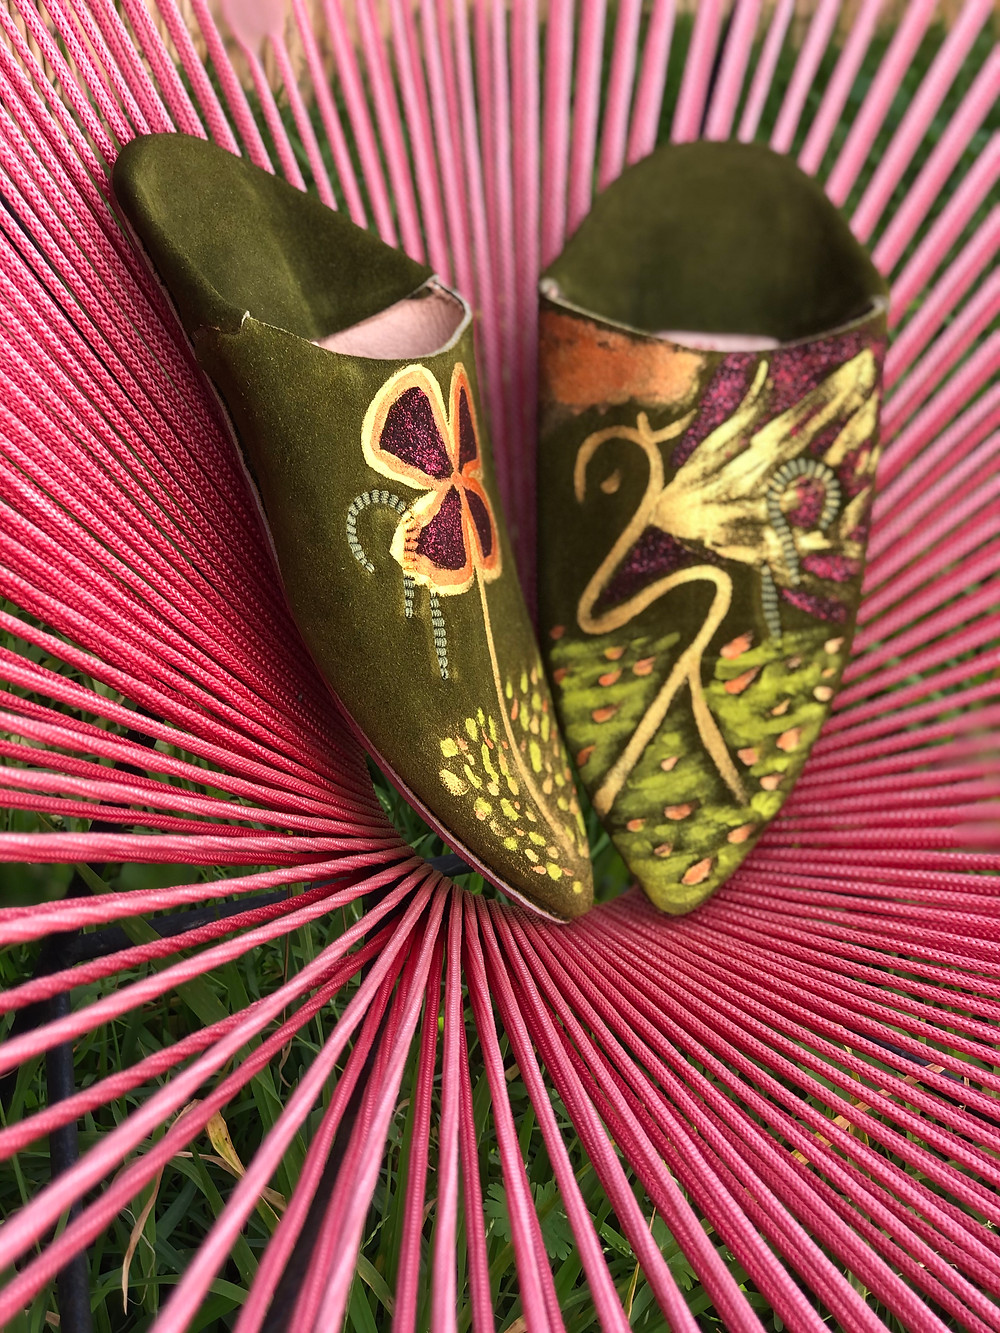 Lady Luck, Moroccan leather shoes handmade and hand-painted, created by Hind Hadri